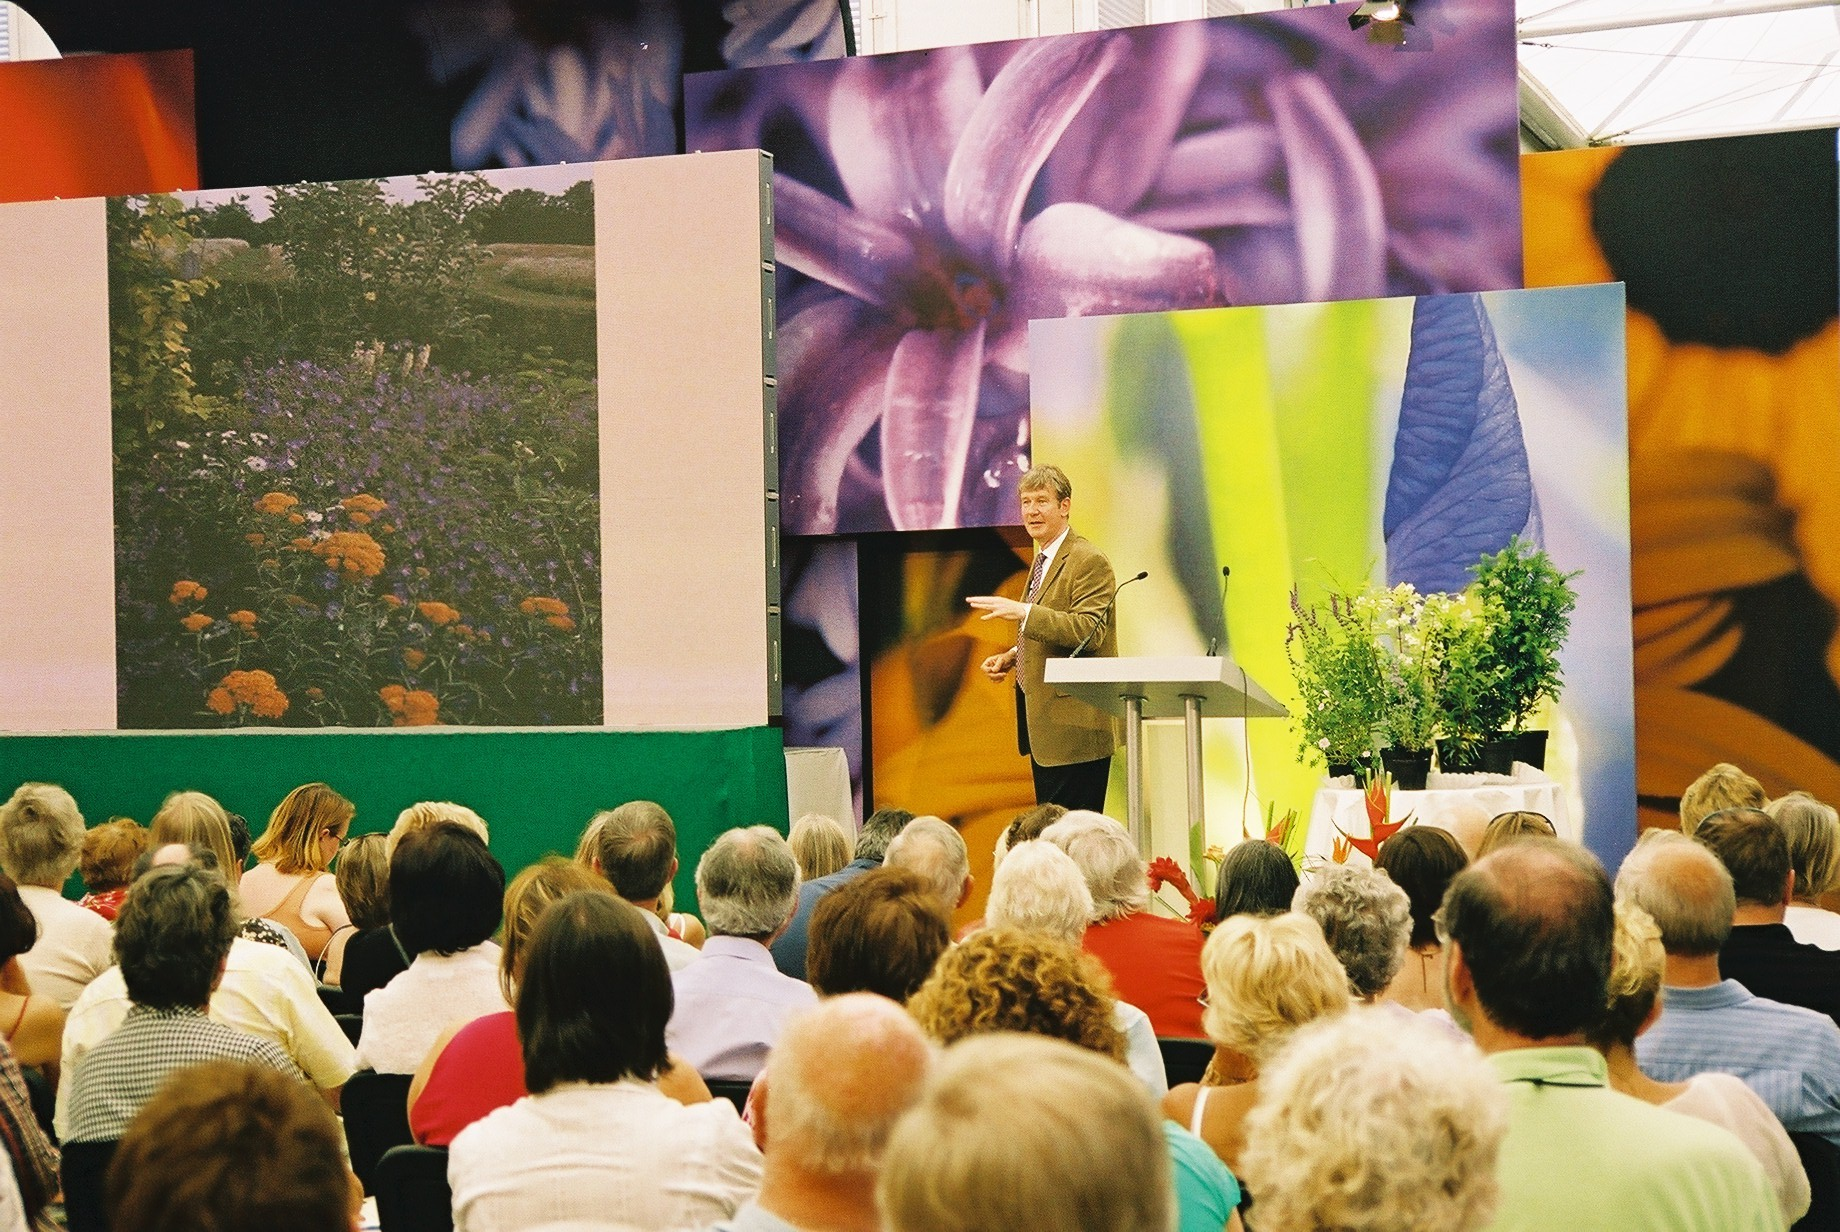 Roger Platts - Garden Talks, Industry Speakers, Events, Visits, Tours.